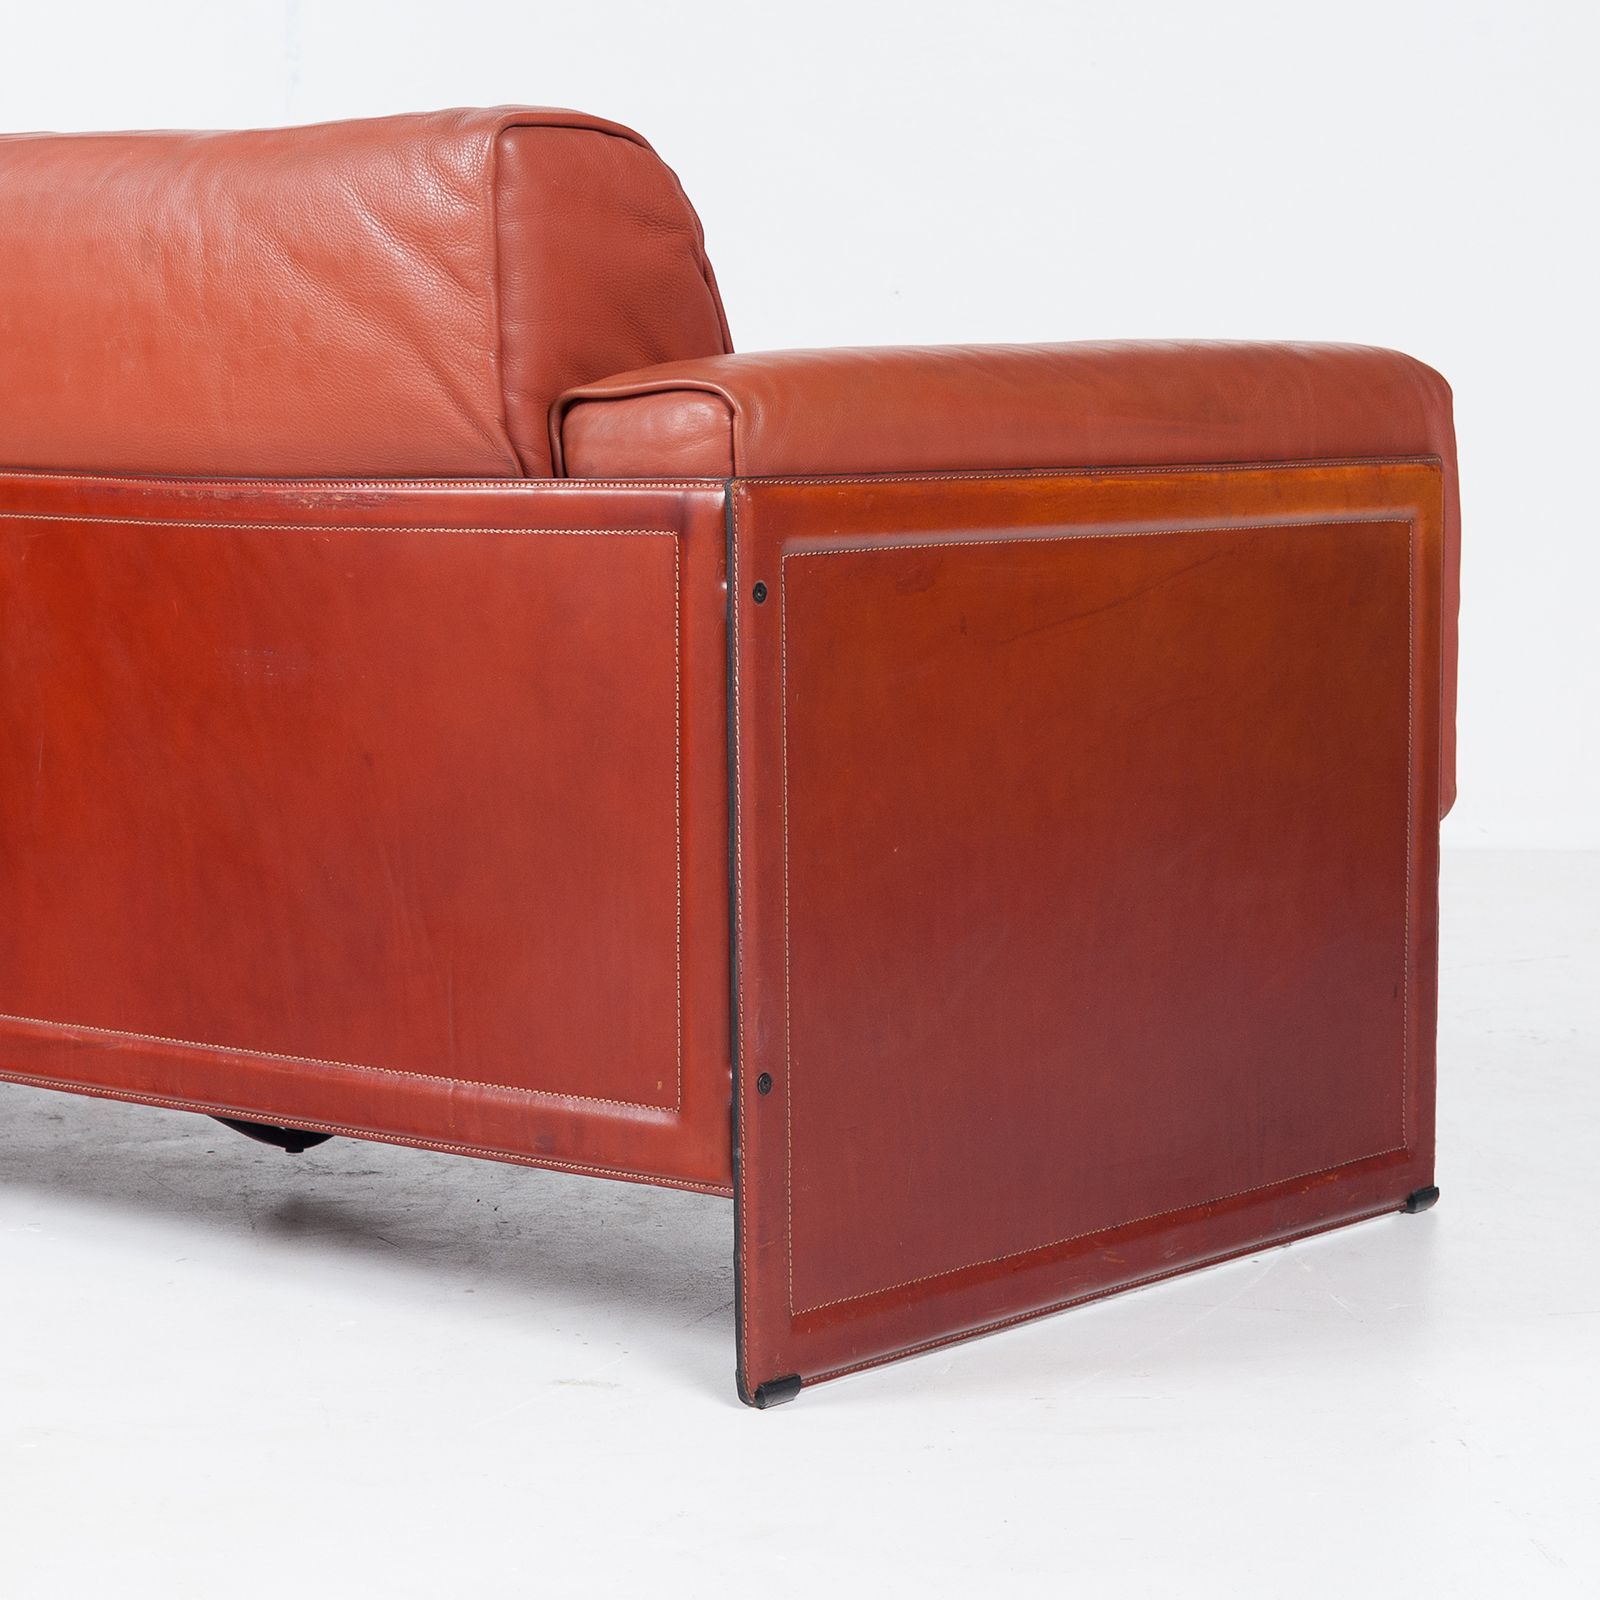 3 Seat Sofa In Leather By Matteo Grassi, 1980s, Italy60